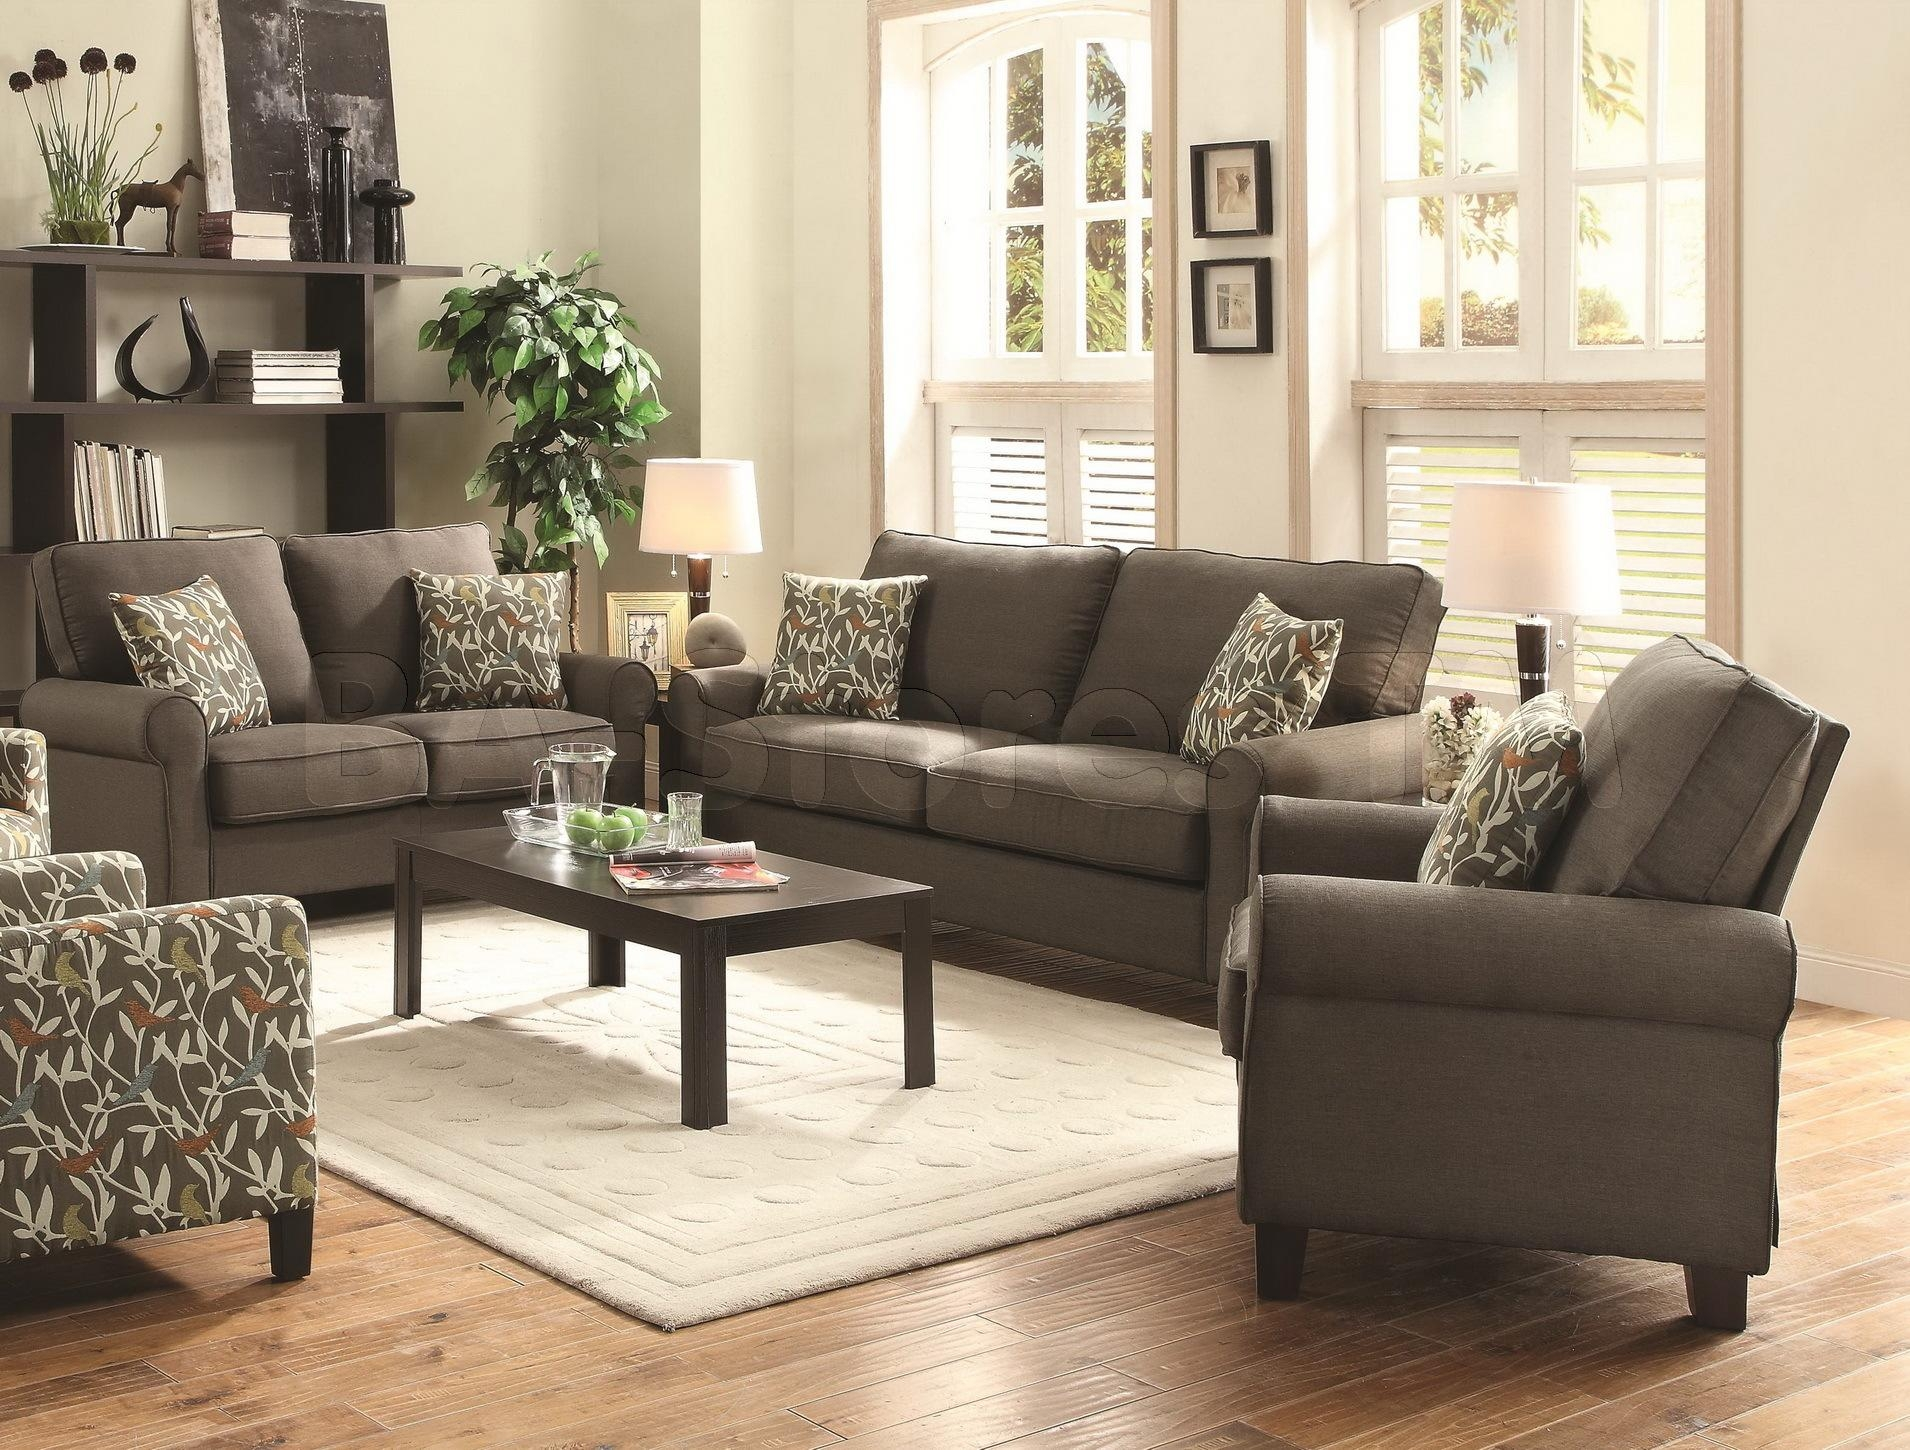 New Sofa Loveseat And Chair Set 57 About Remodel Sofa Table Ideas intended for Sofa Loveseat and Chair Set